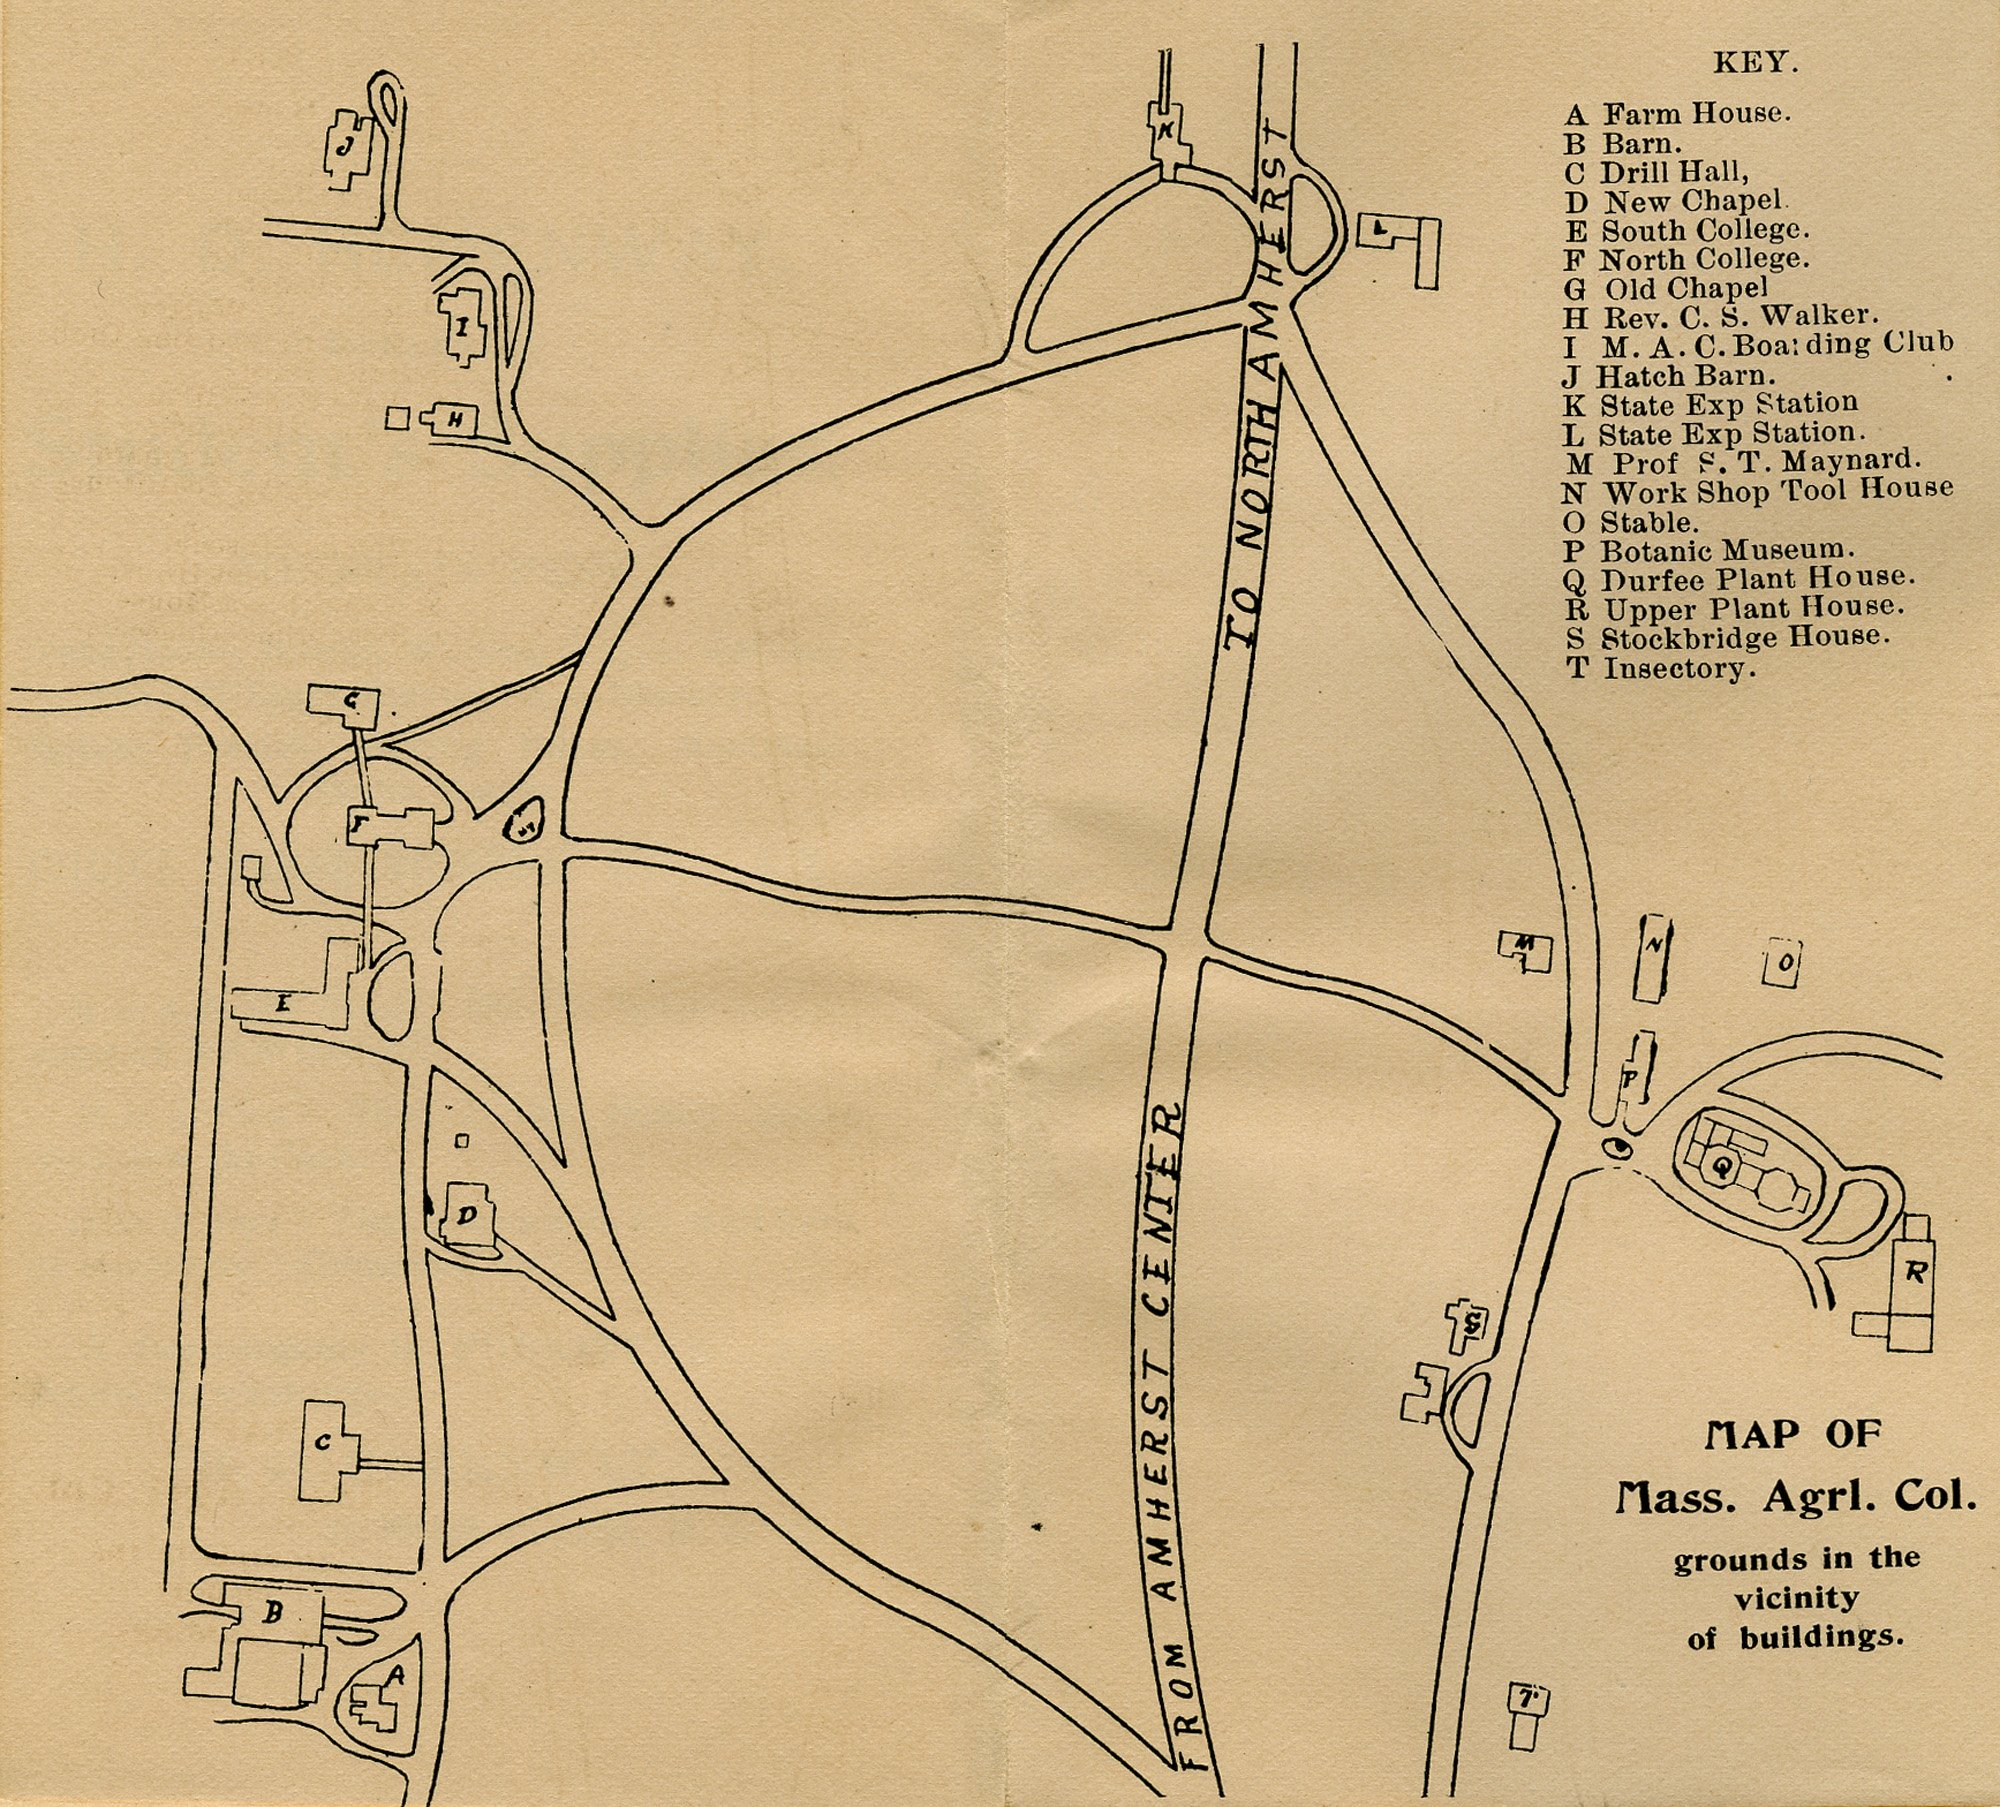 1893 MAC Campus Map. From Student Handbooks, University Archives (RG 30/00/2)